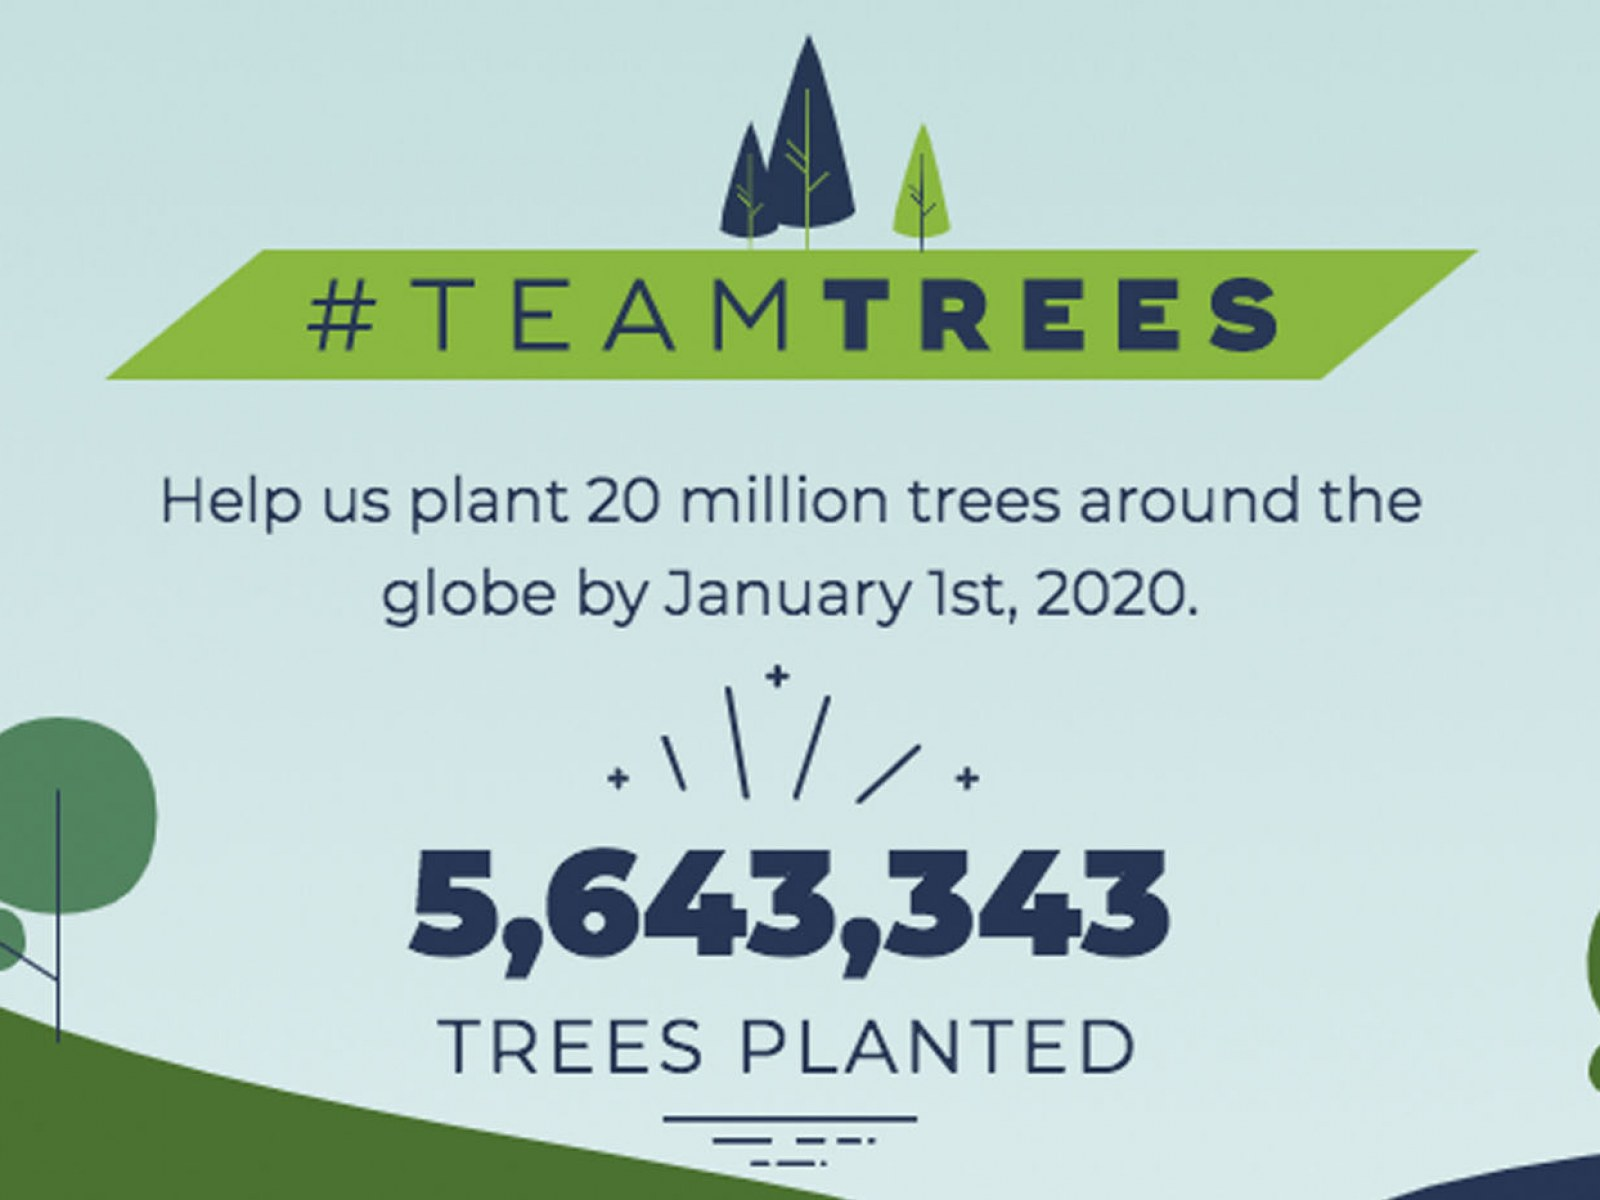 Youtubers Come Together To Fundraise For Team Trees To Help